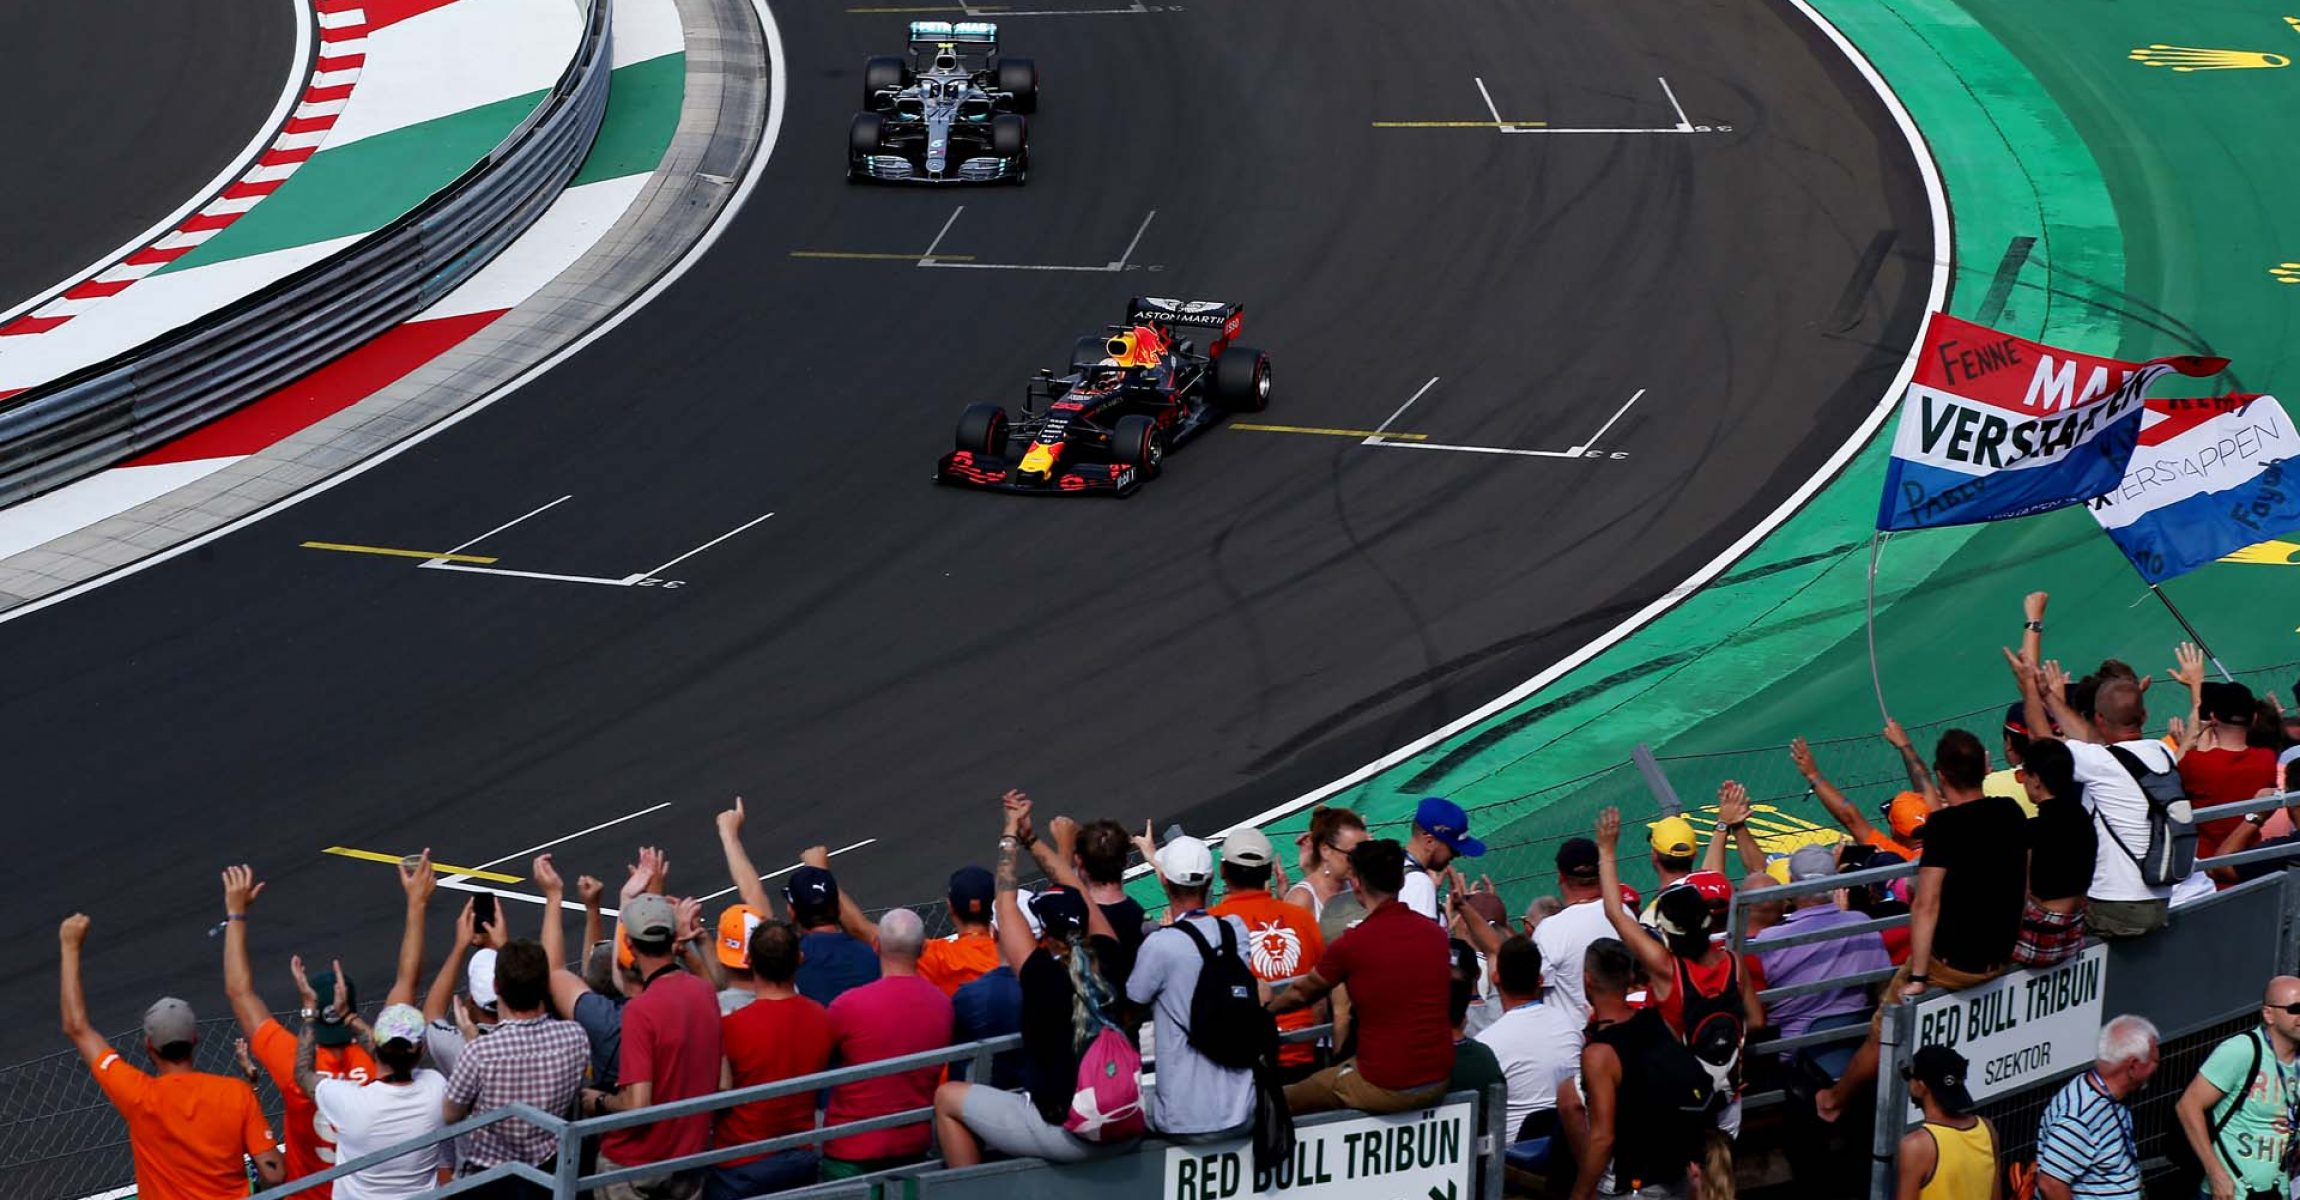 BUDAPEST, HUNGARY - AUGUST 03: Fans celebrate as pole position qualifier Max Verstappen of the Netherlands driving the (33) Aston Martin Red Bull Racing RB15 pulls into parc ferme ahead of second placed qualifier Valtteri Bottas of Finland and Mercedes GP during qualifying for the F1 Grand Prix of Hungary at Hungaroring on August 03, 2019 in Budapest, Hungary. (Photo by Charles Coates/Getty Images) // Getty Images / Red Bull Content Pool // AP-2157QXQQD1W11 // Usage for editorial use only // Please go to www.redbullcontentpool.com for further information. //